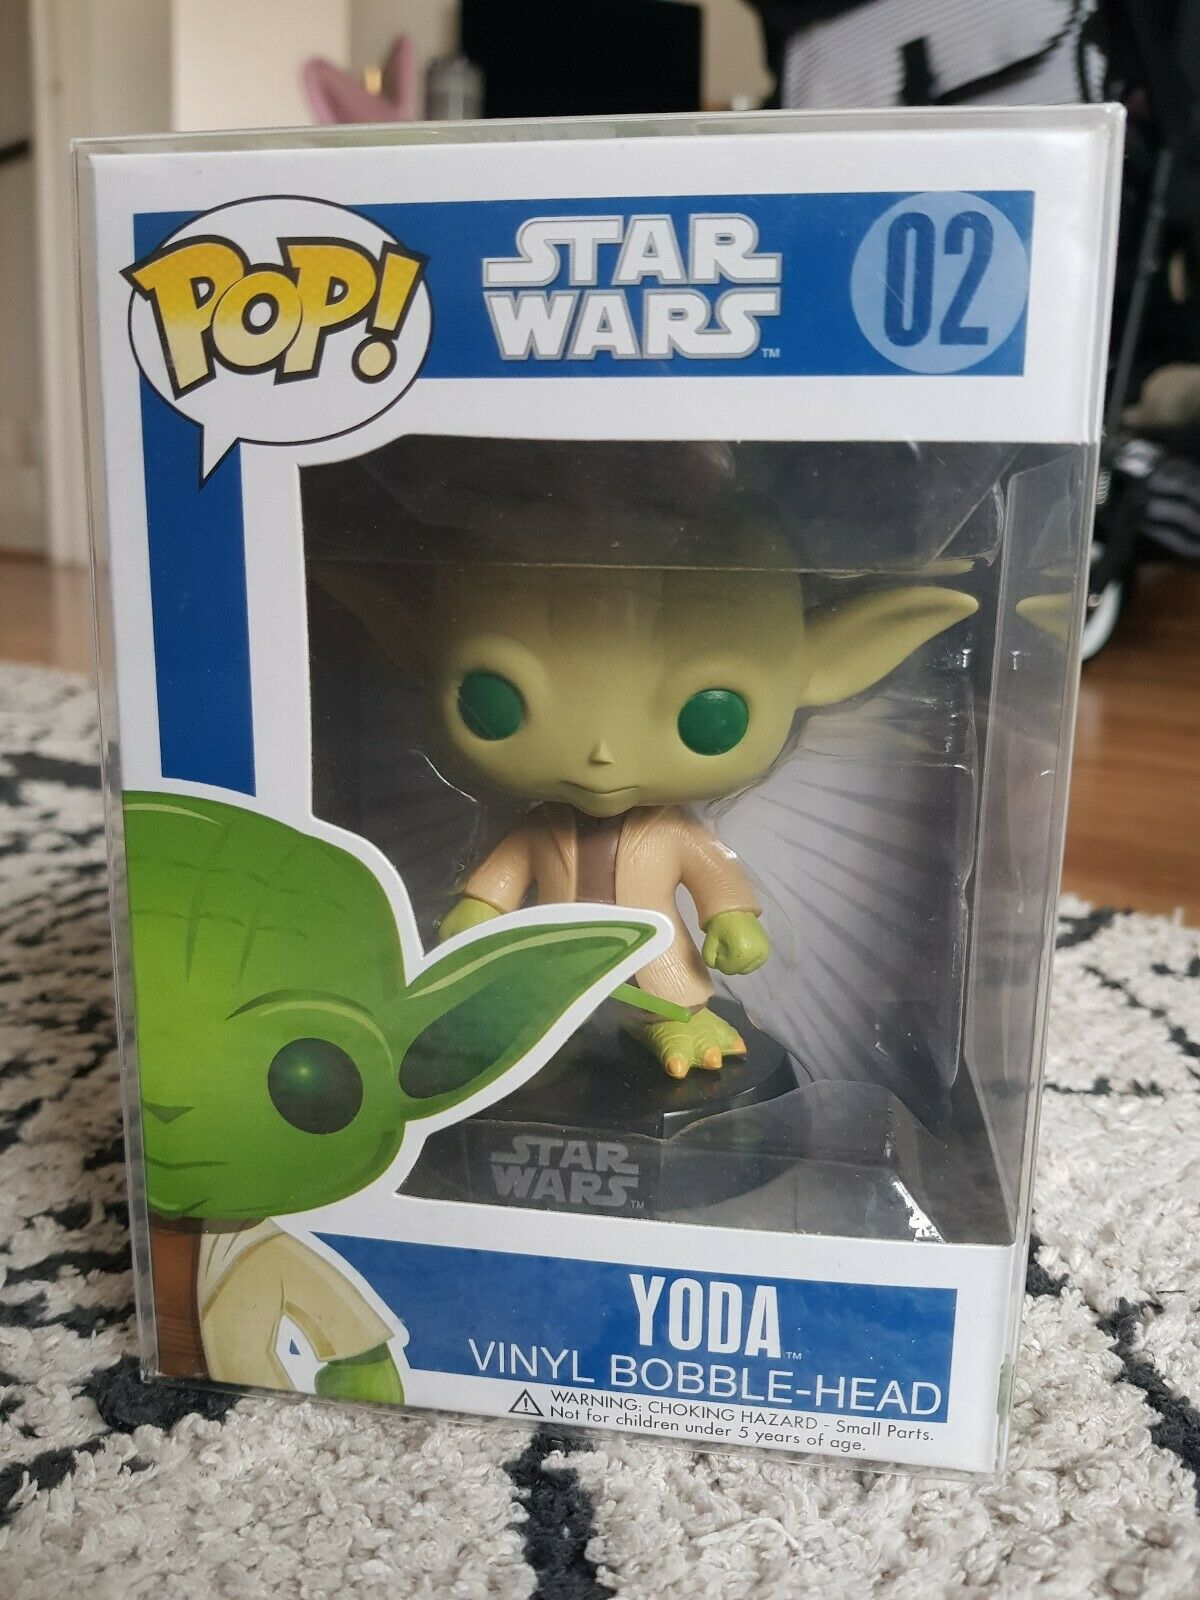 Star Wars Funko Pop Pop Pop Vinyl Series 1 Yoda 02 Bobblehead 3fb2ae